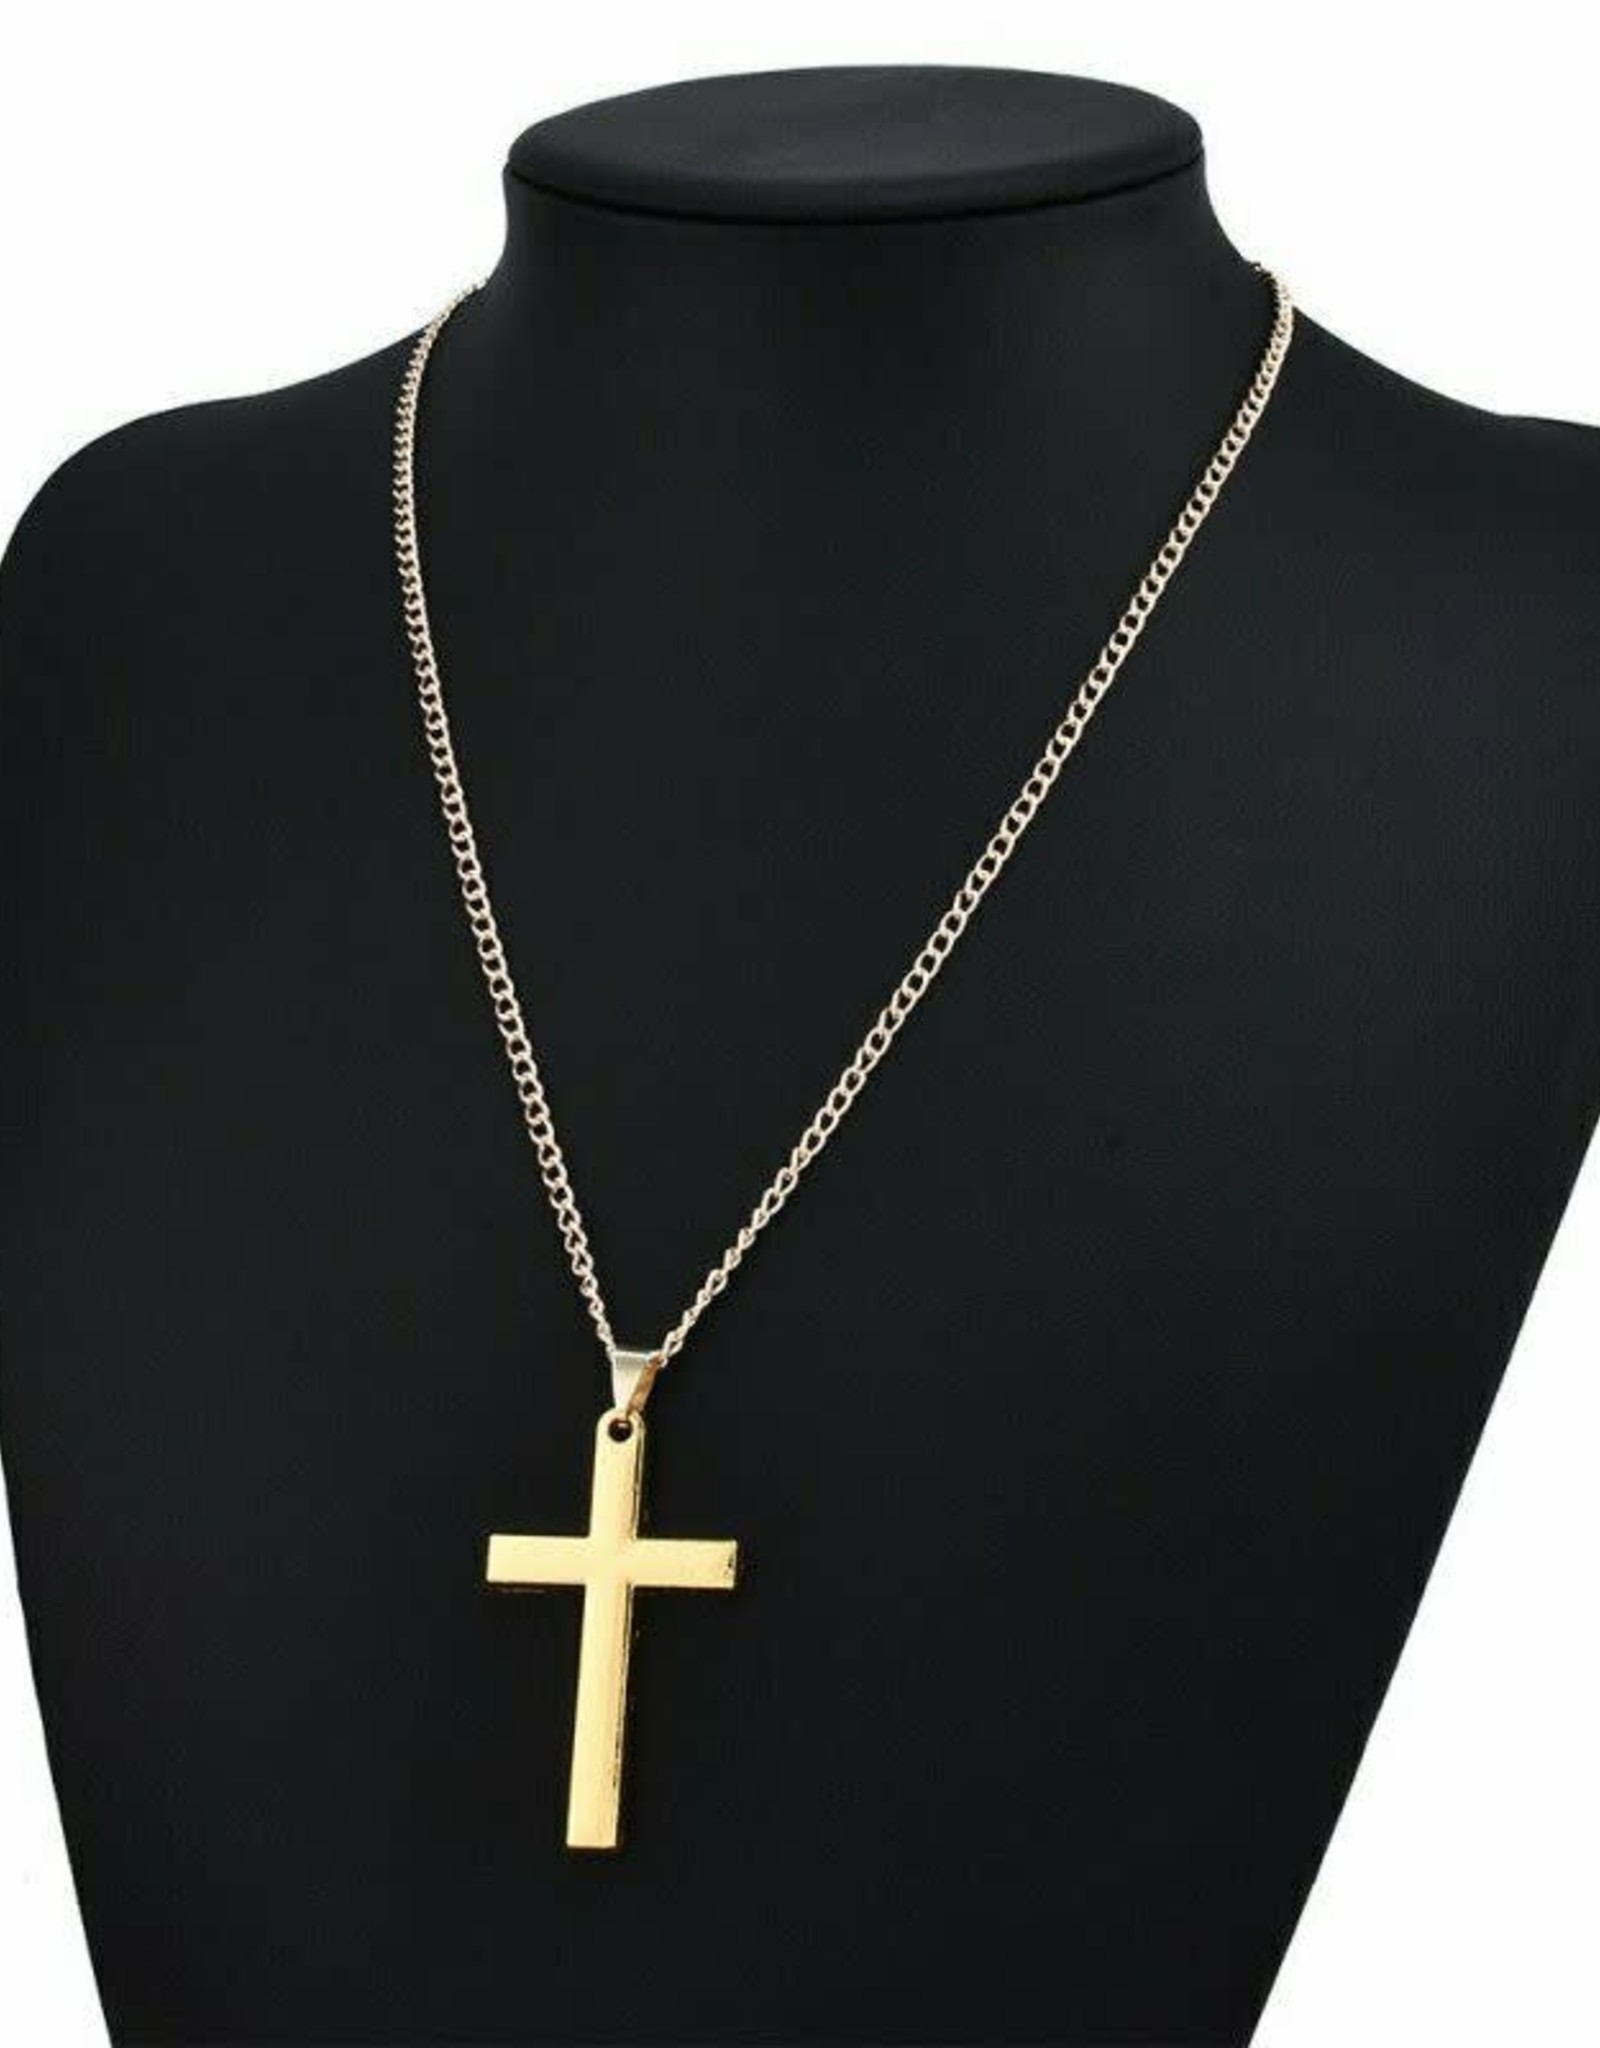 Chain With Cross 2in x 1.25in thick Gold